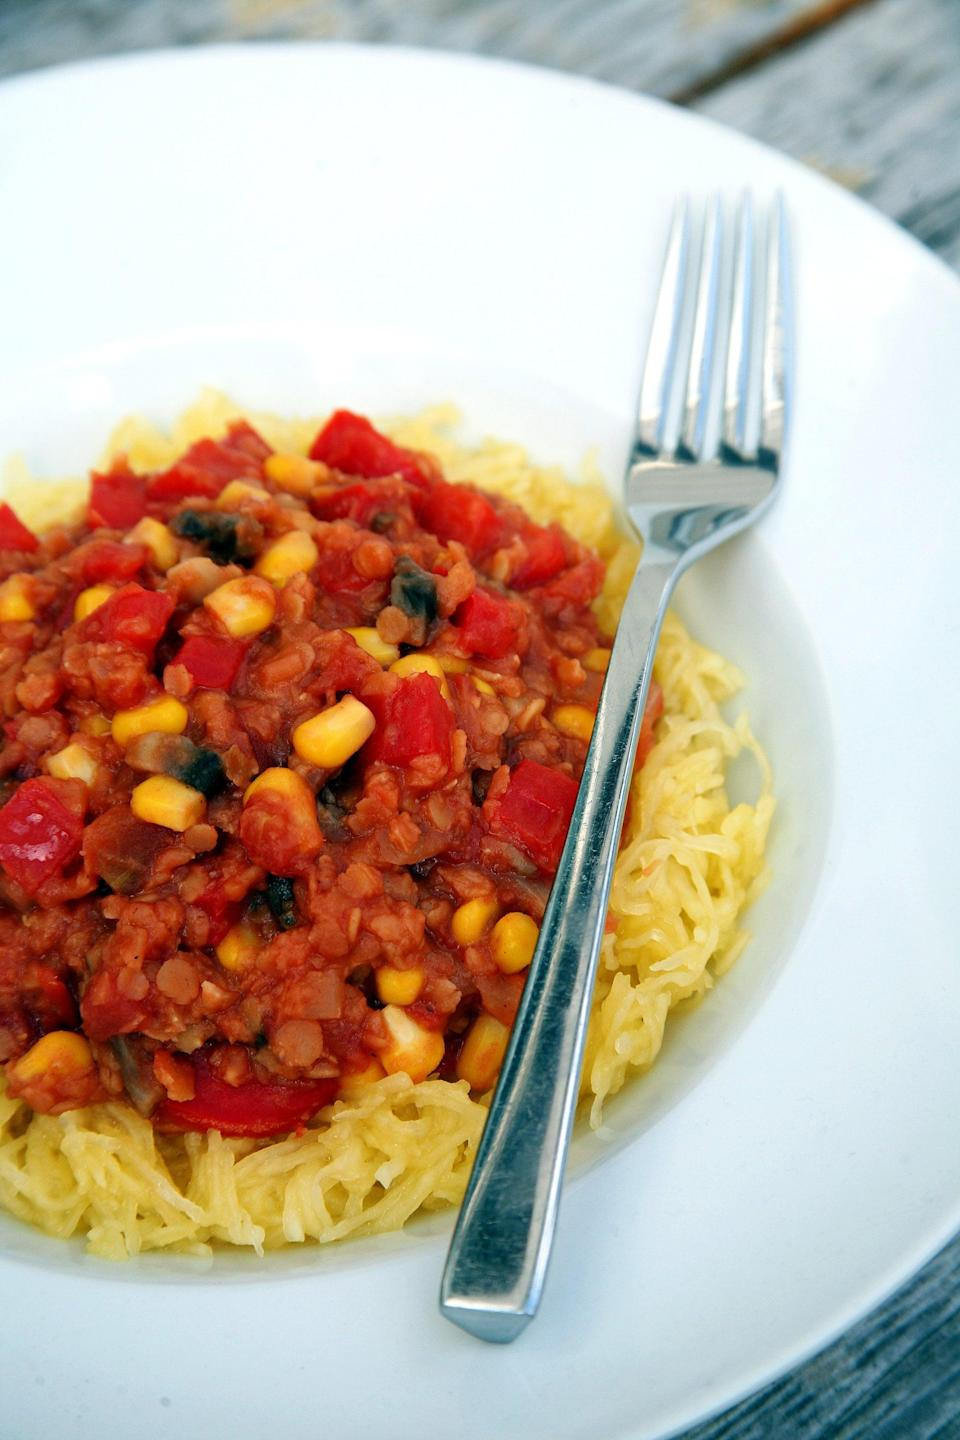 """<p>The chewy texture of the lentils is comparable to ground beef, and since the maple-cumin tomato flavor is so outstanding, your meat-loving family will love it just as much - maybe even more.</p> <p><strong>Get the recipe:</strong> <a href=""""https://www.popsugar.com/fitness/Spaghetti-Squash-Lentils-40654750"""" class=""""link rapid-noclick-resp"""" rel=""""nofollow noopener"""" target=""""_blank"""" data-ylk=""""slk:maple-cumin lentils over spaghetti squash"""">maple-cumin lentils over spaghetti squash</a></p>"""